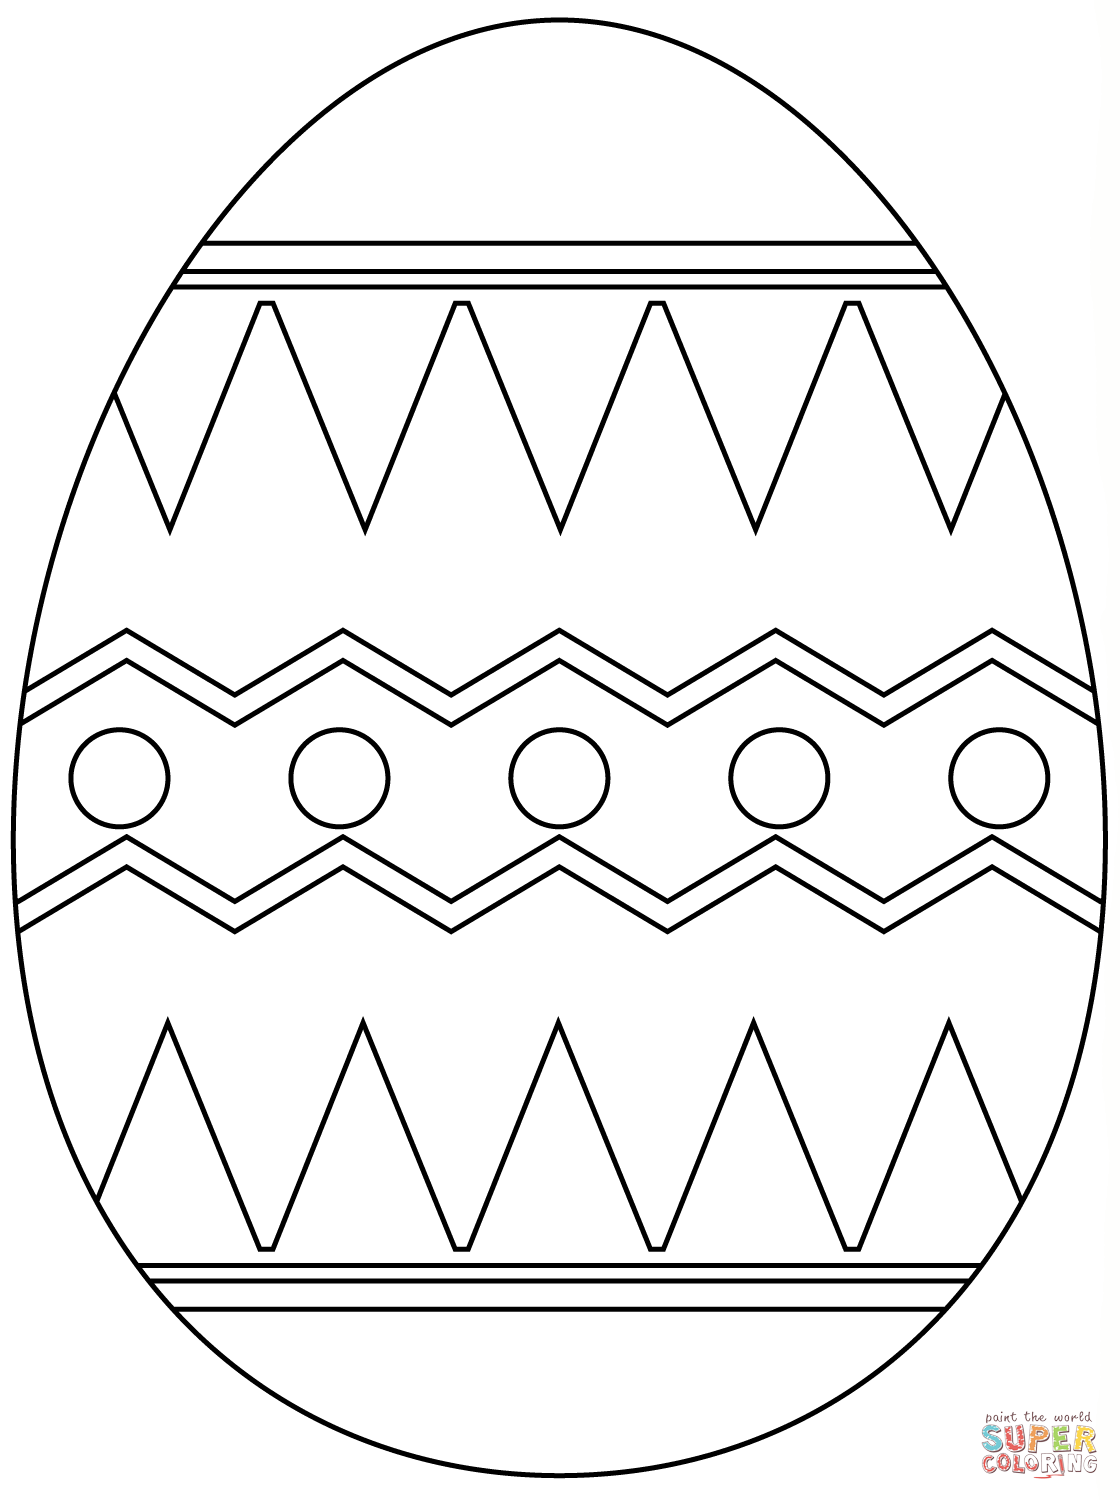 Easter Egg With Abstract Pattern Super Coloring Easter Egg Coloring Pages Bunny Coloring Pages Coloring Easter Eggs